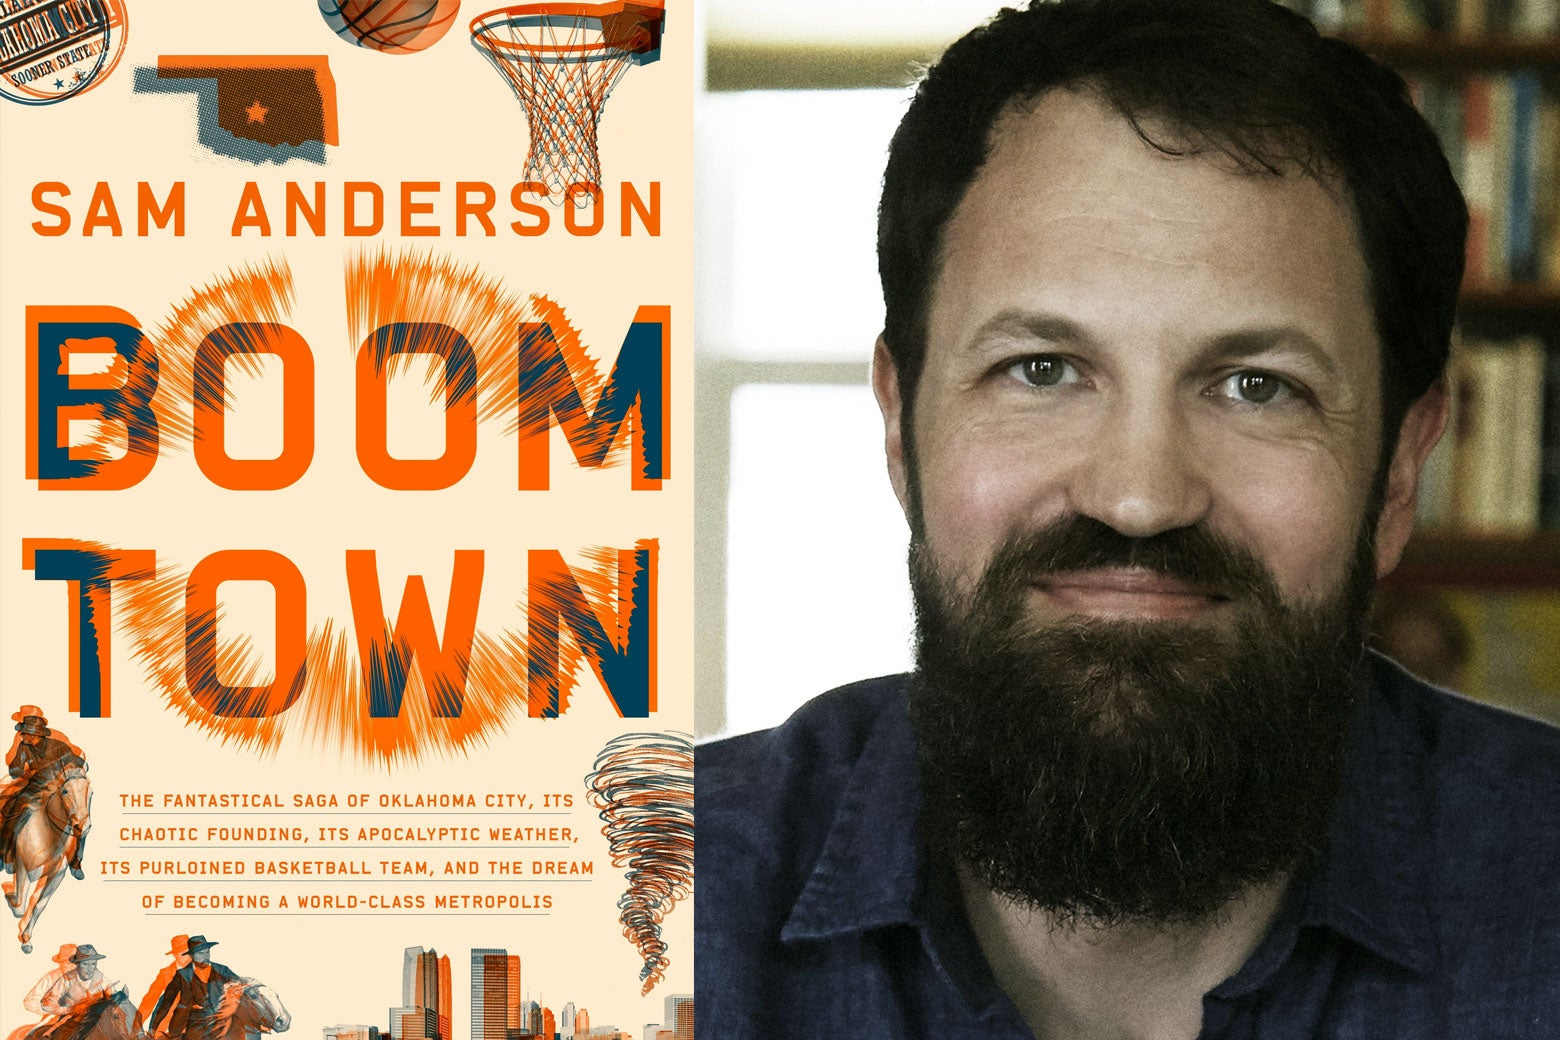 Boom Town book cover alongside its author, Sam Anderson.